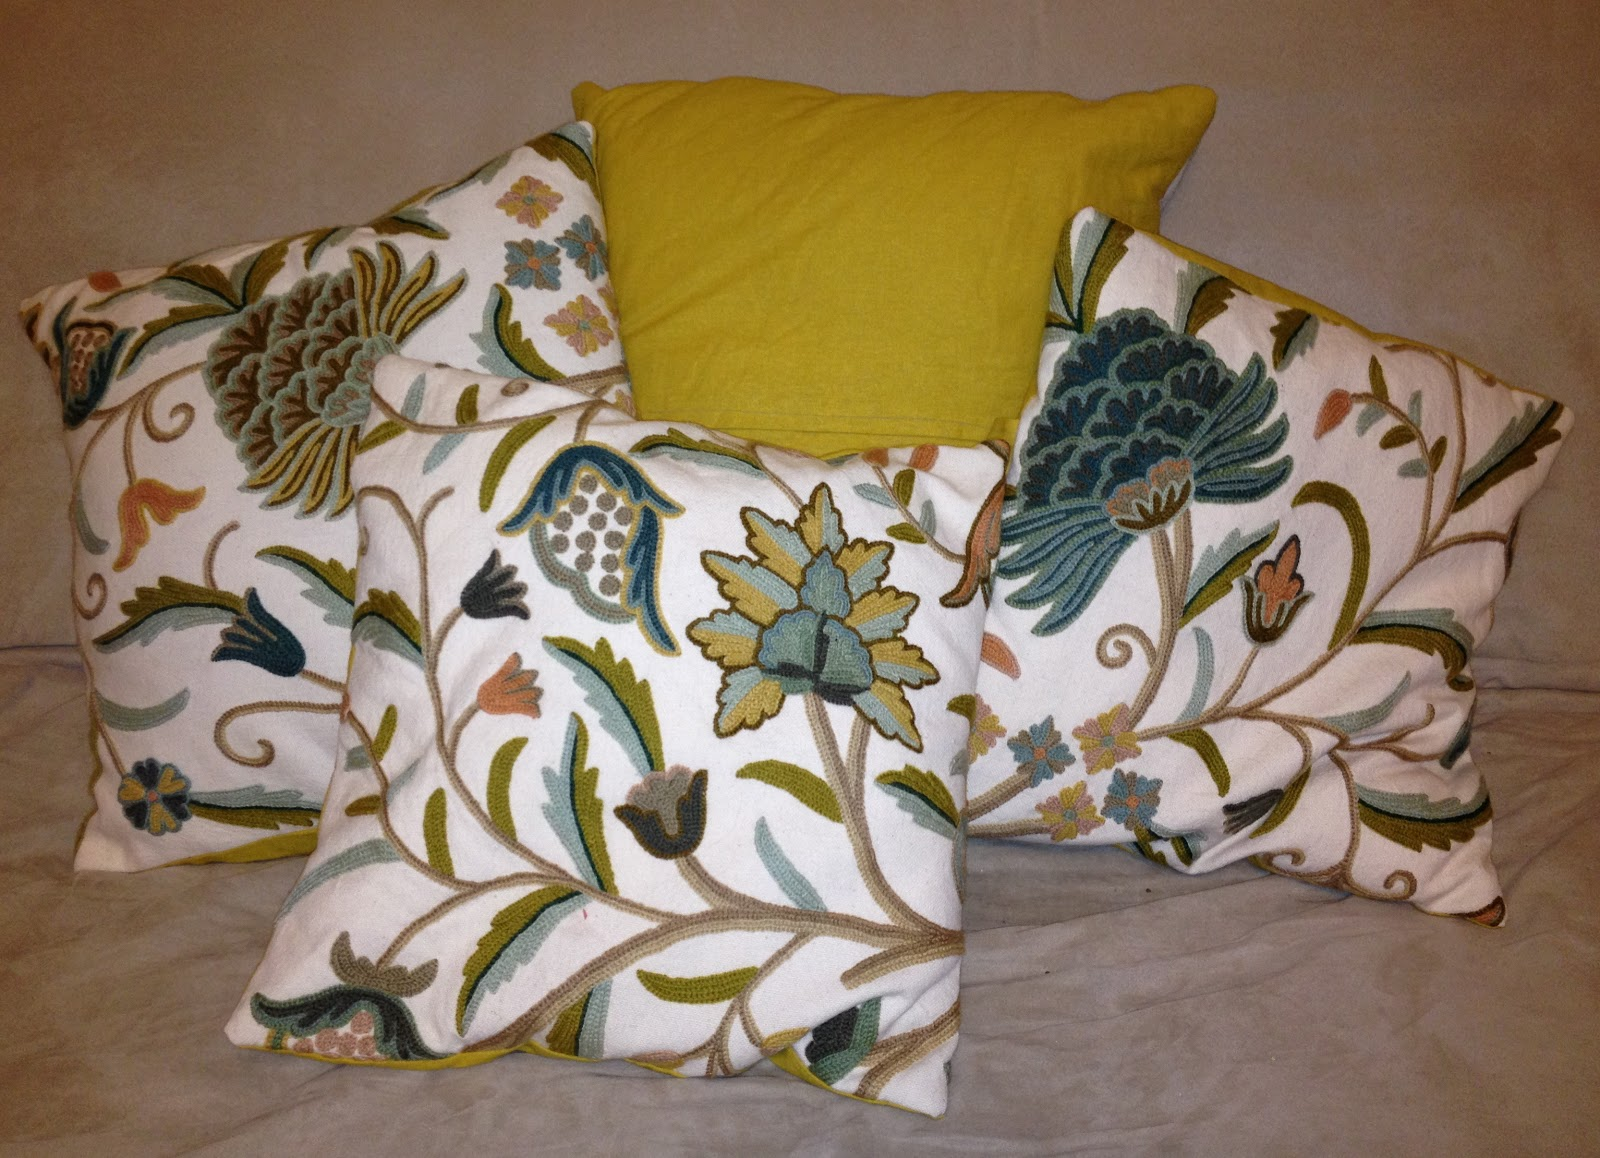 Why Are Throw Pillows So Expensive : DIY Decorative Pillows Light and Sweet